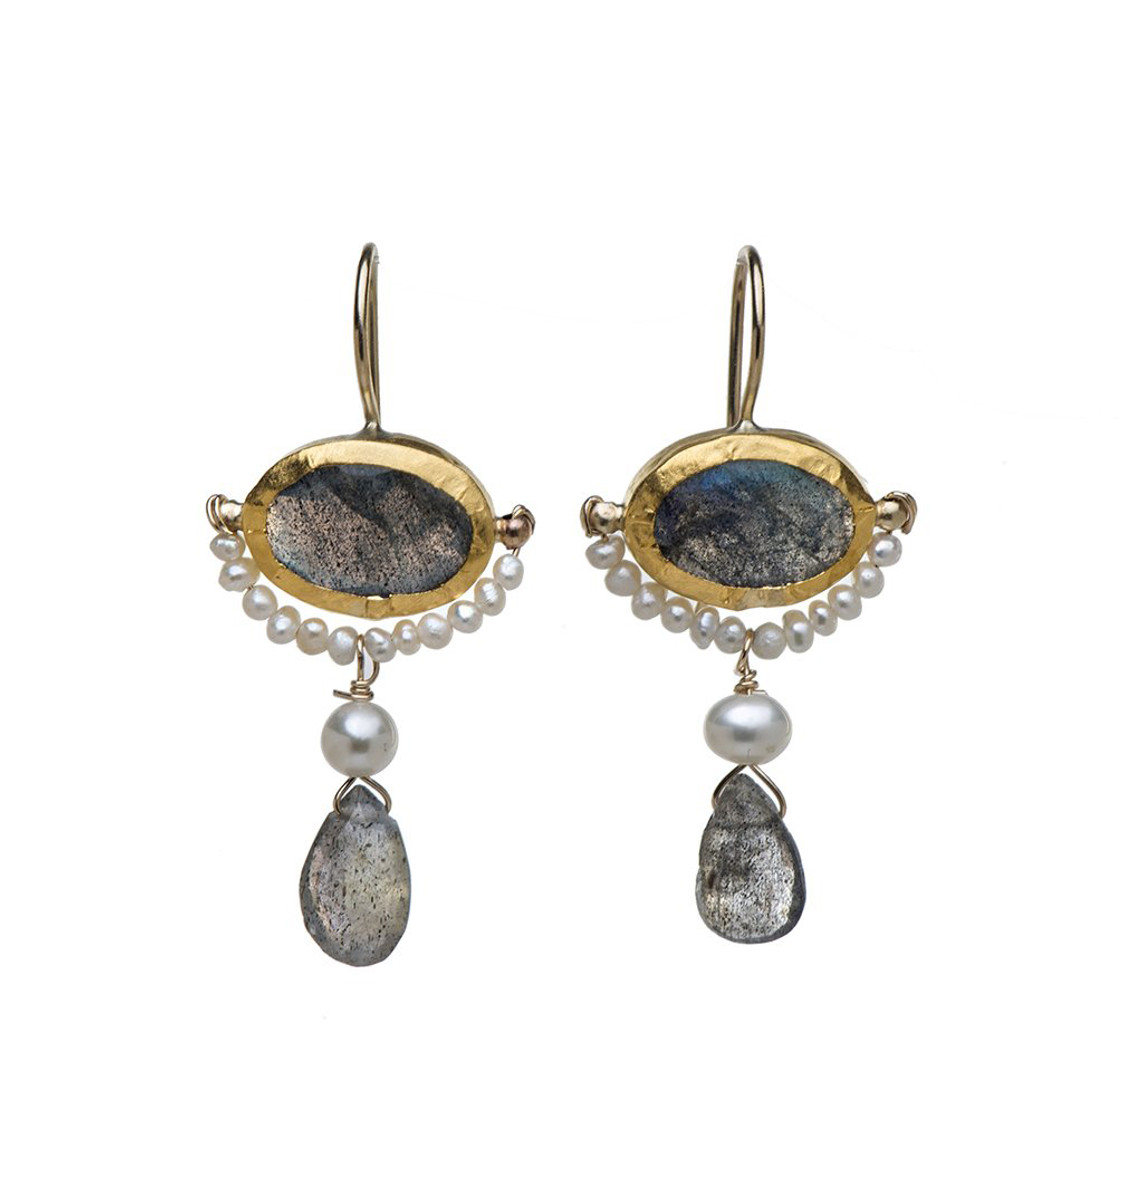 Aurora Earrings by Nava Zahavi - New Arrival